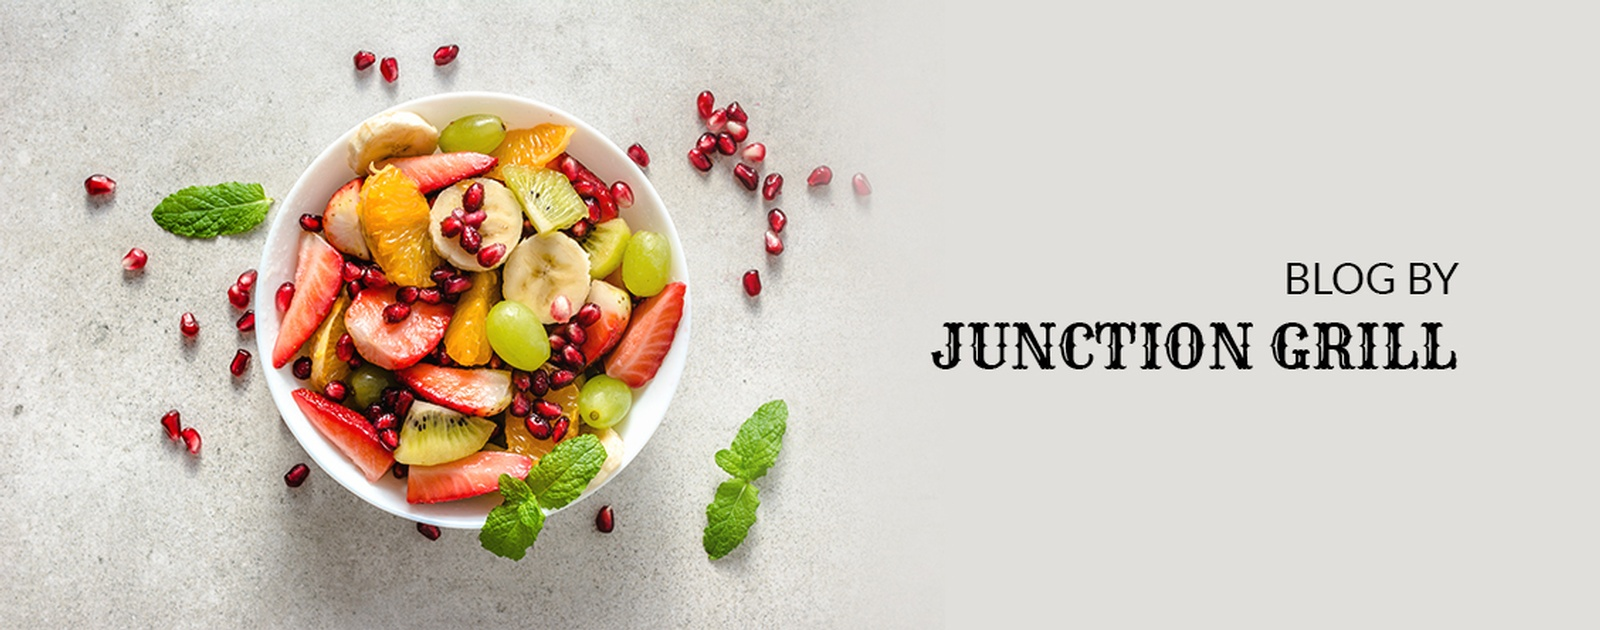 Blog by Junction Grill